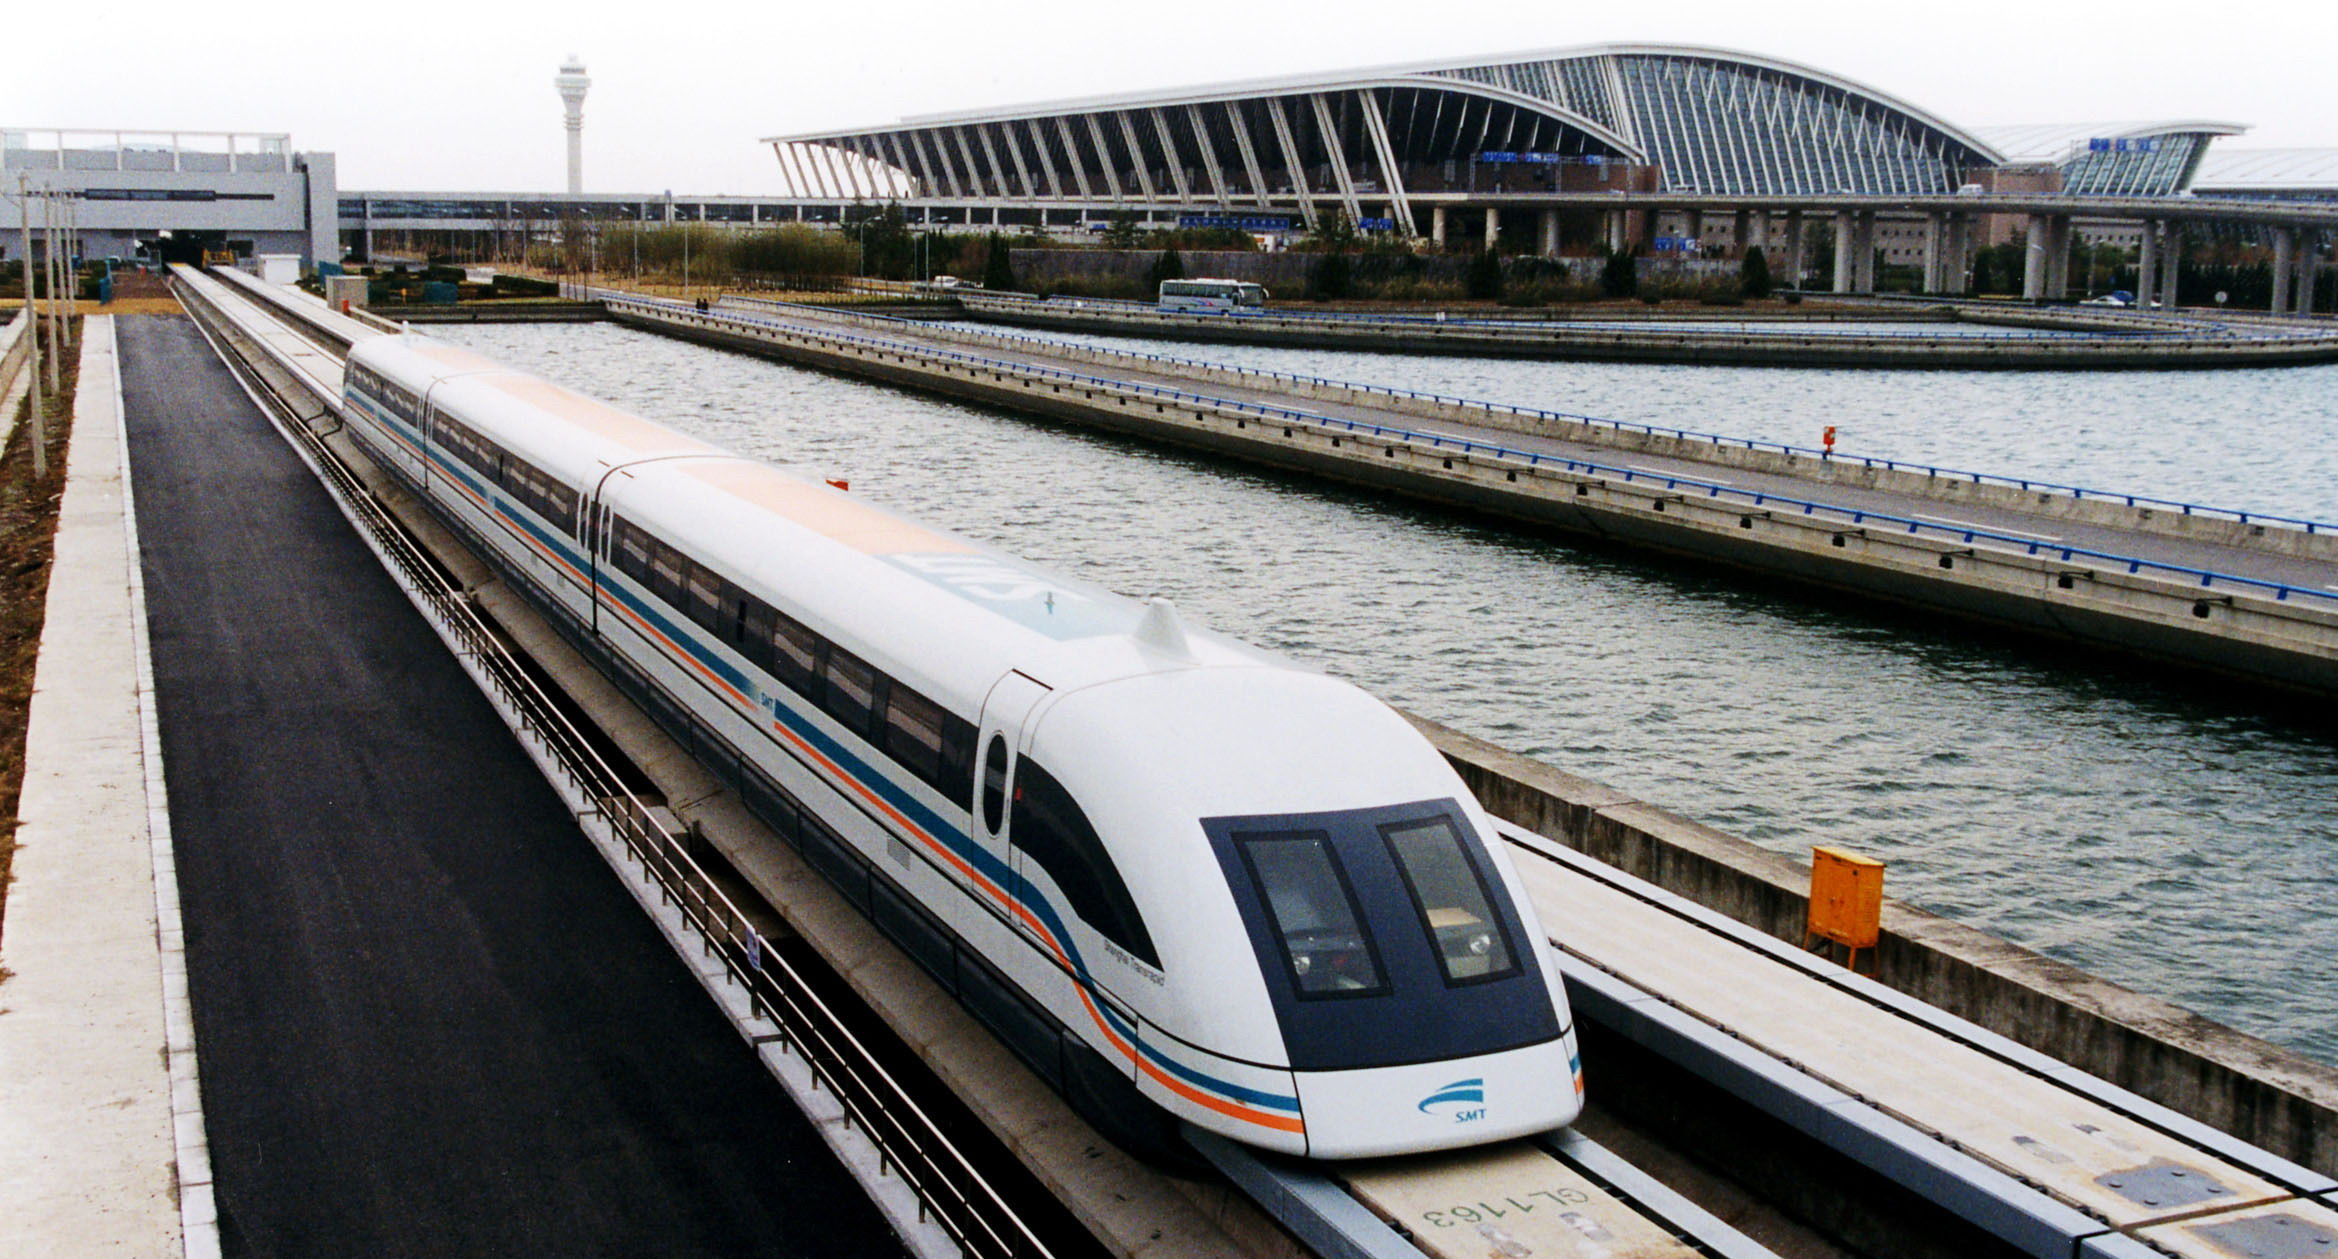 A_maglev_train_coming_out,_Pudong_International_Airport,_Shanghai.jpg